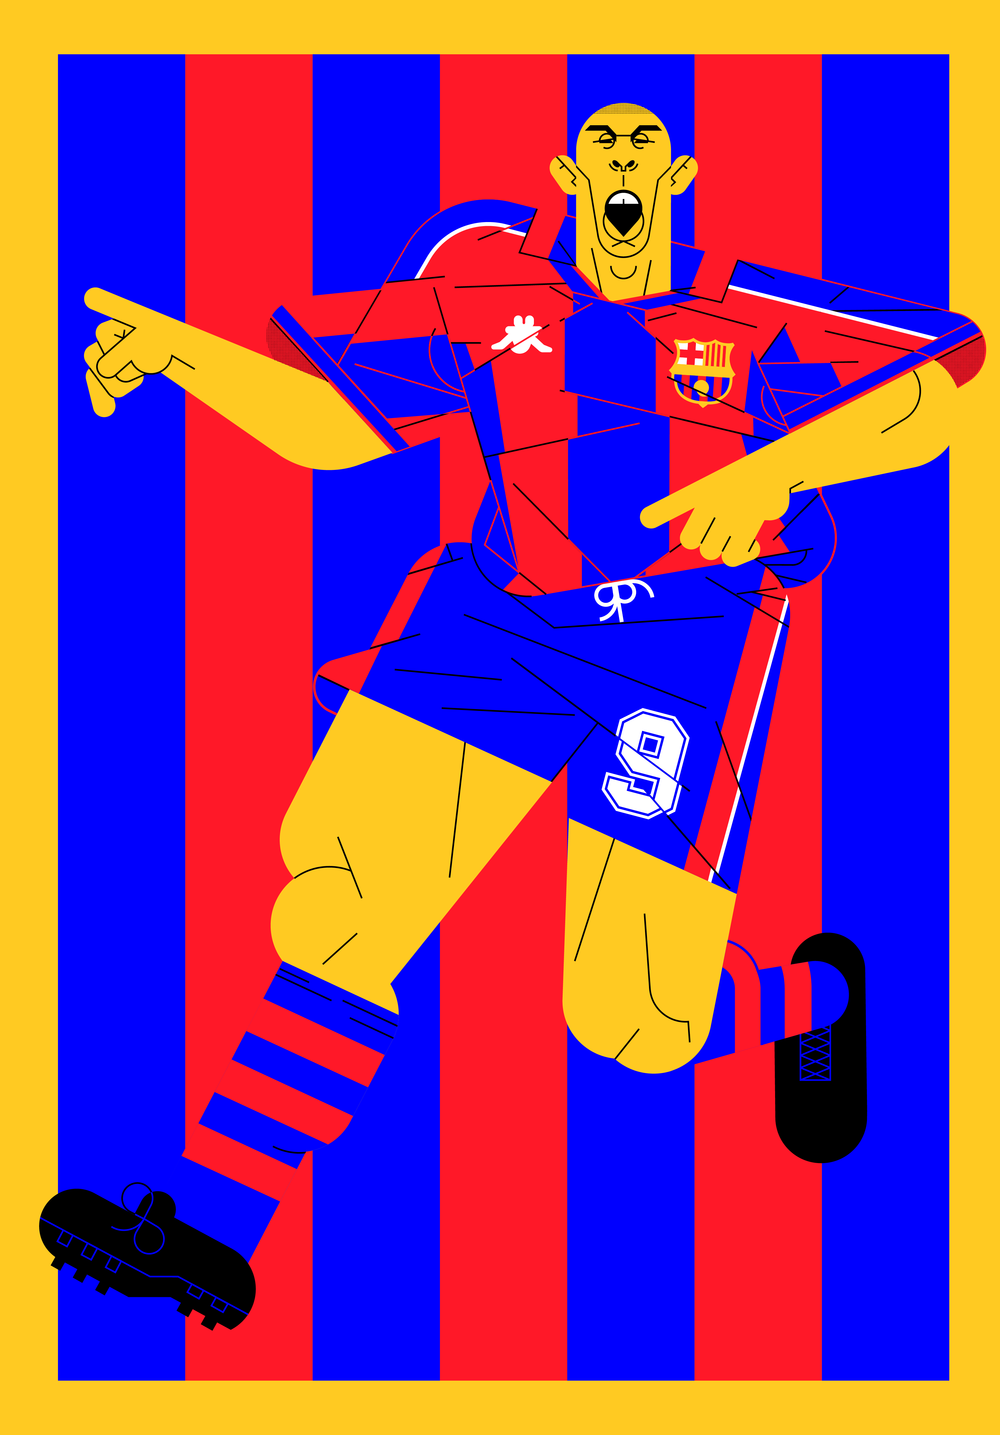 Football Players_Ronaldo 9 Barcelona_web.png